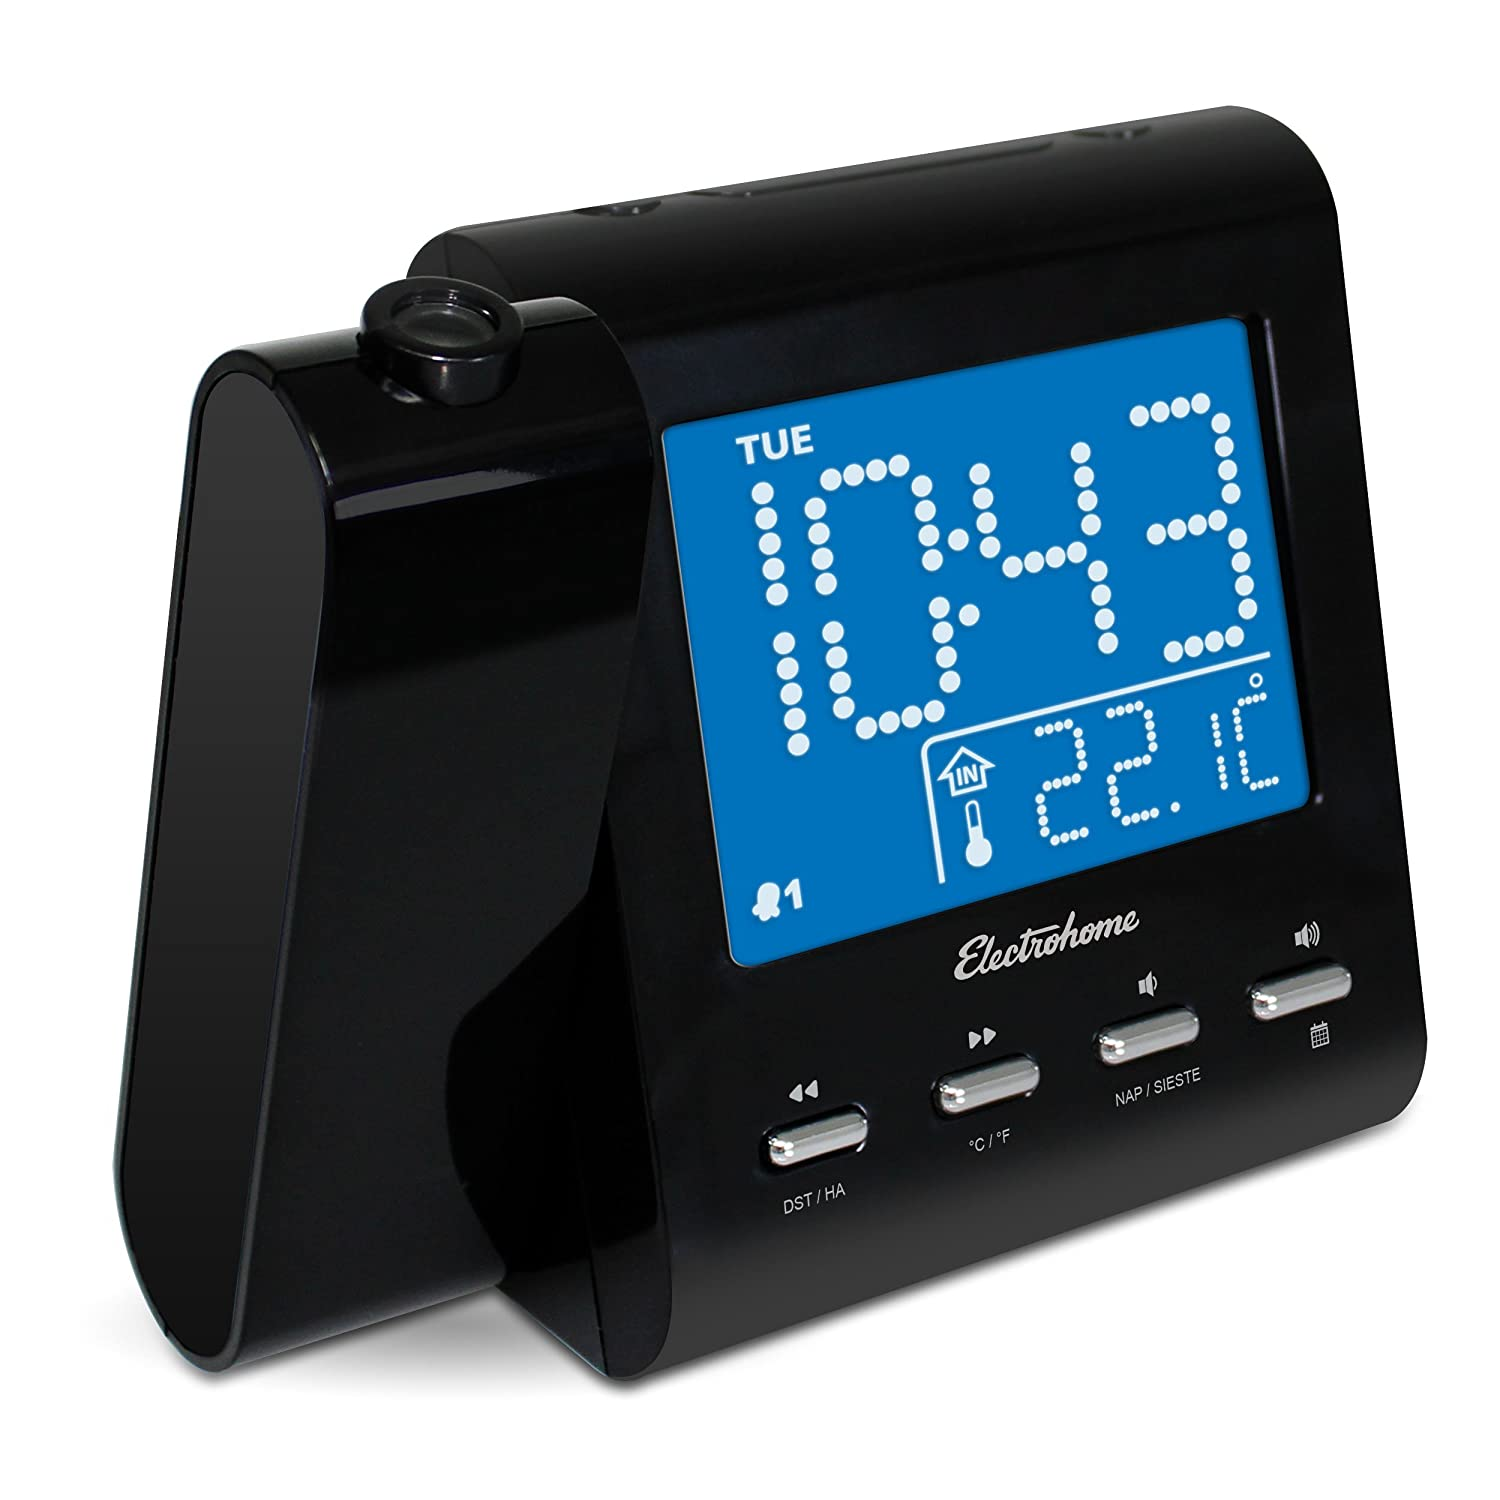 Amazoncom Electrohome EAAC601 Projection Alarm Clock with